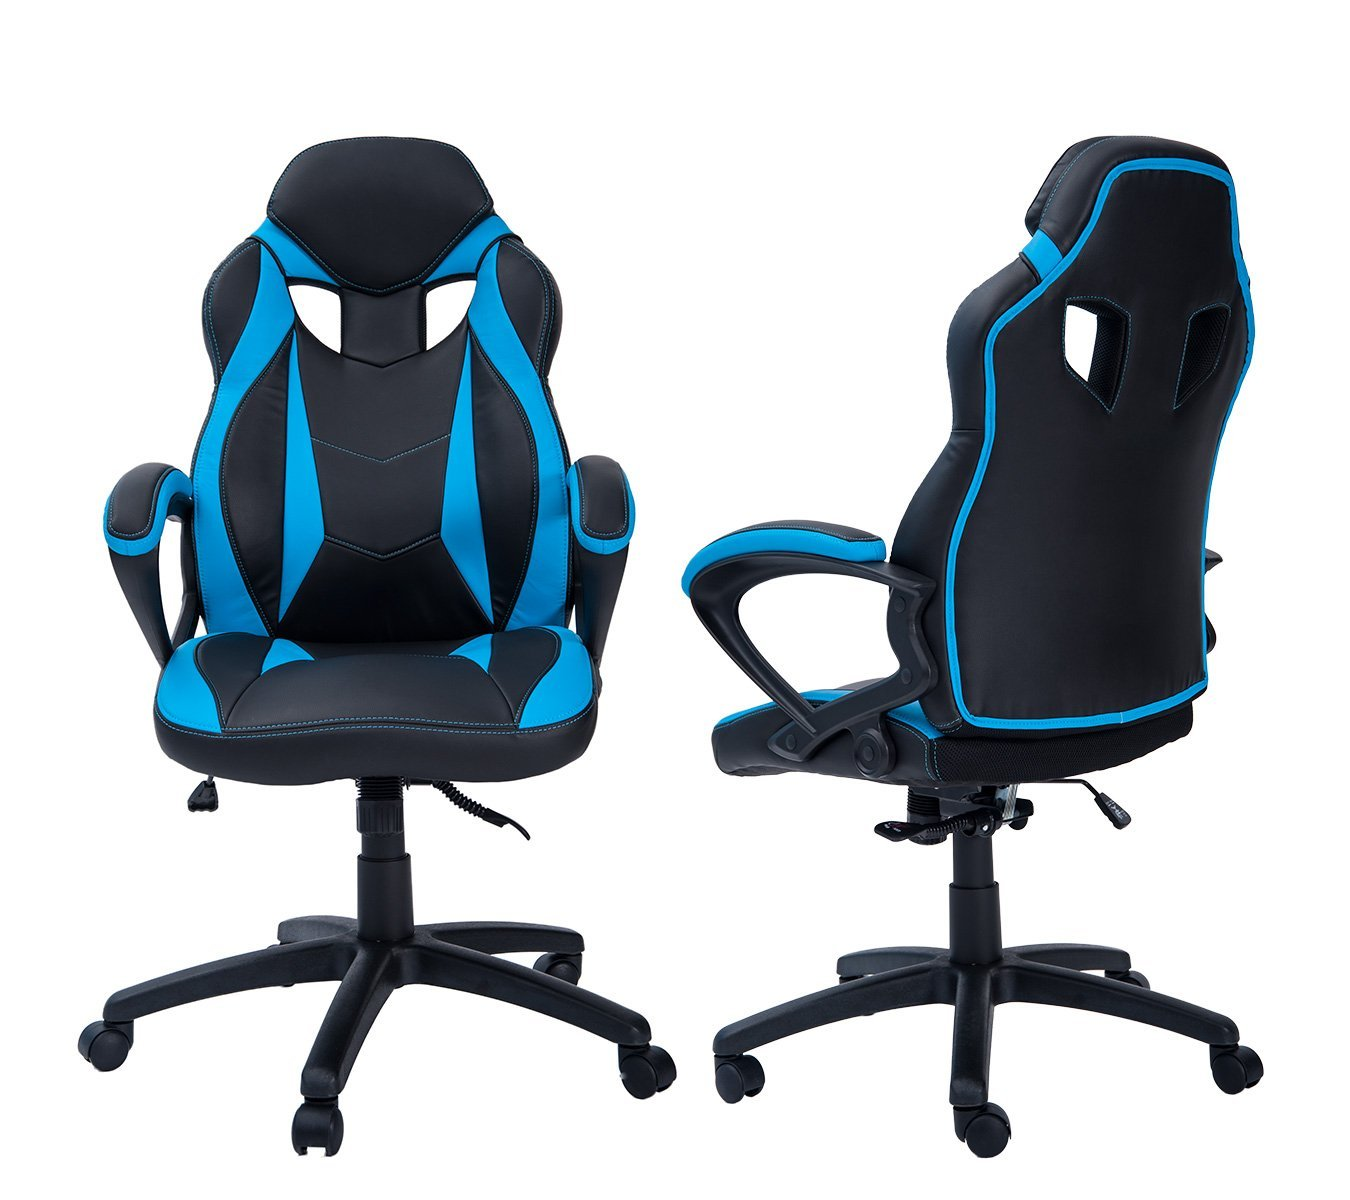 expensive gaming chair yilan design competition best cheap chairs merax ergonomics review